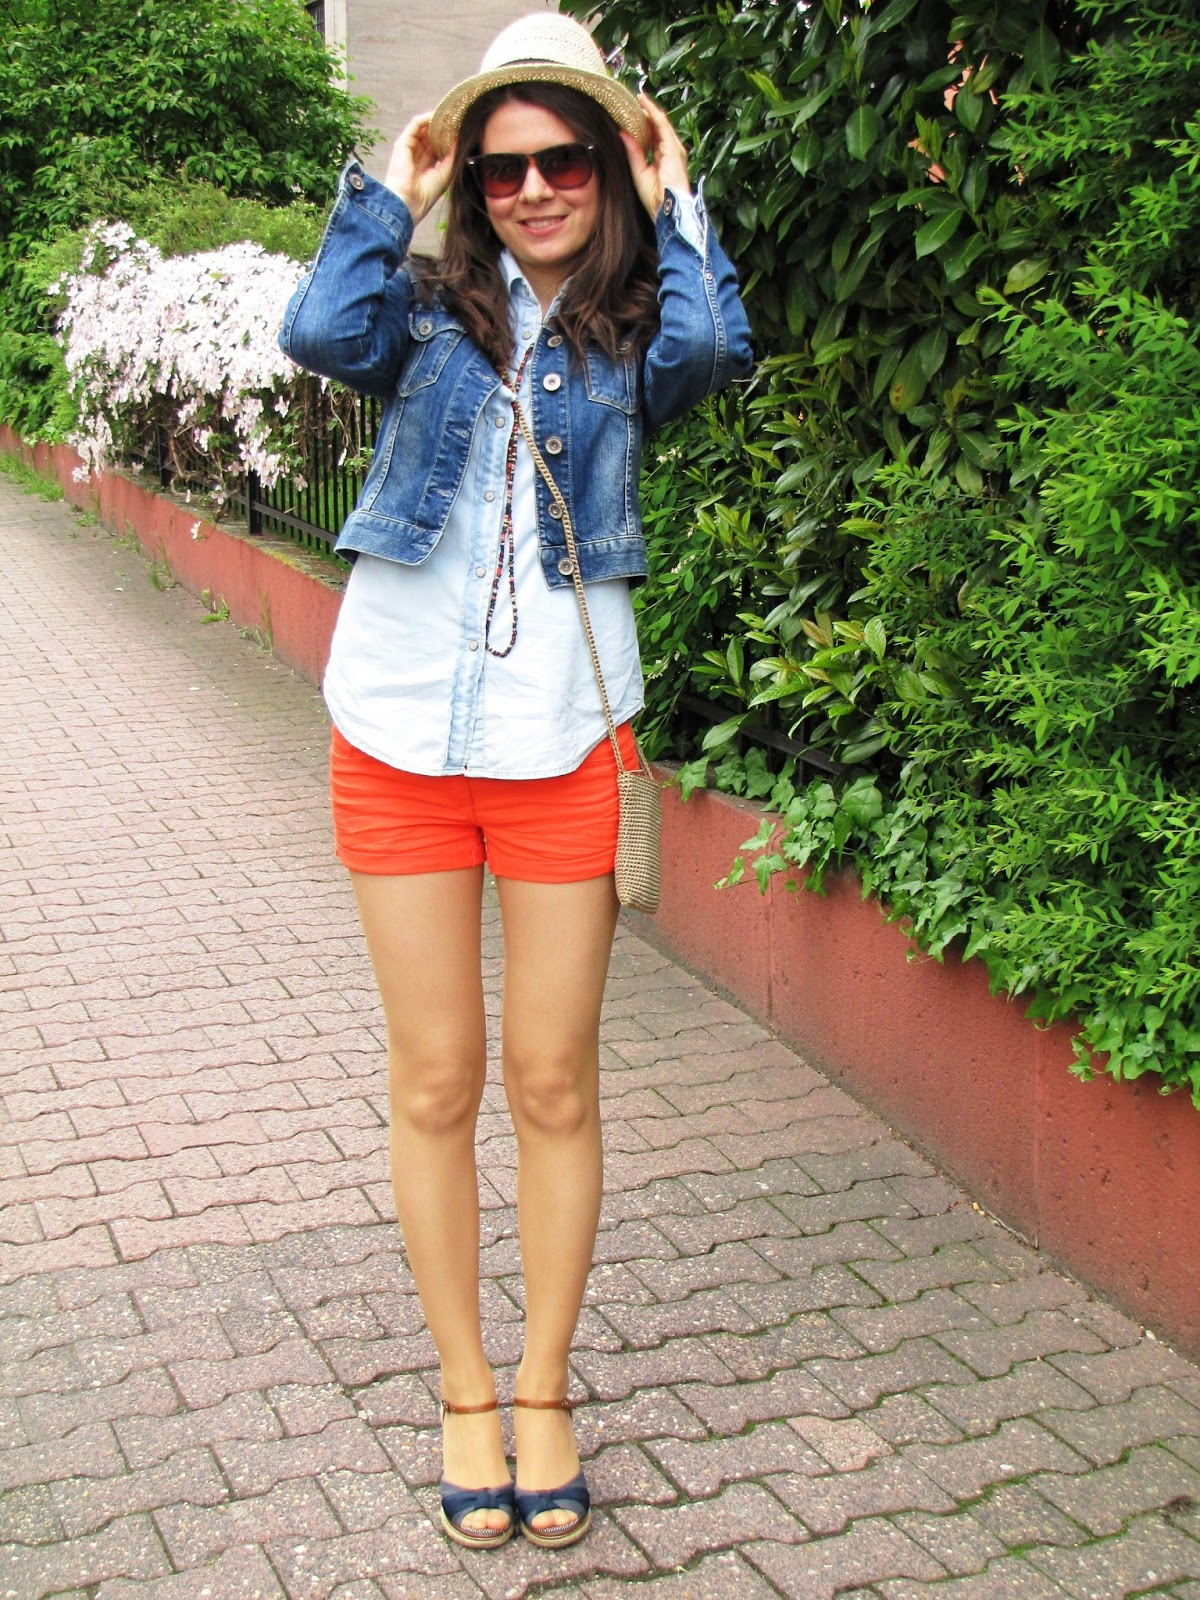 Jeans look, orange shorts